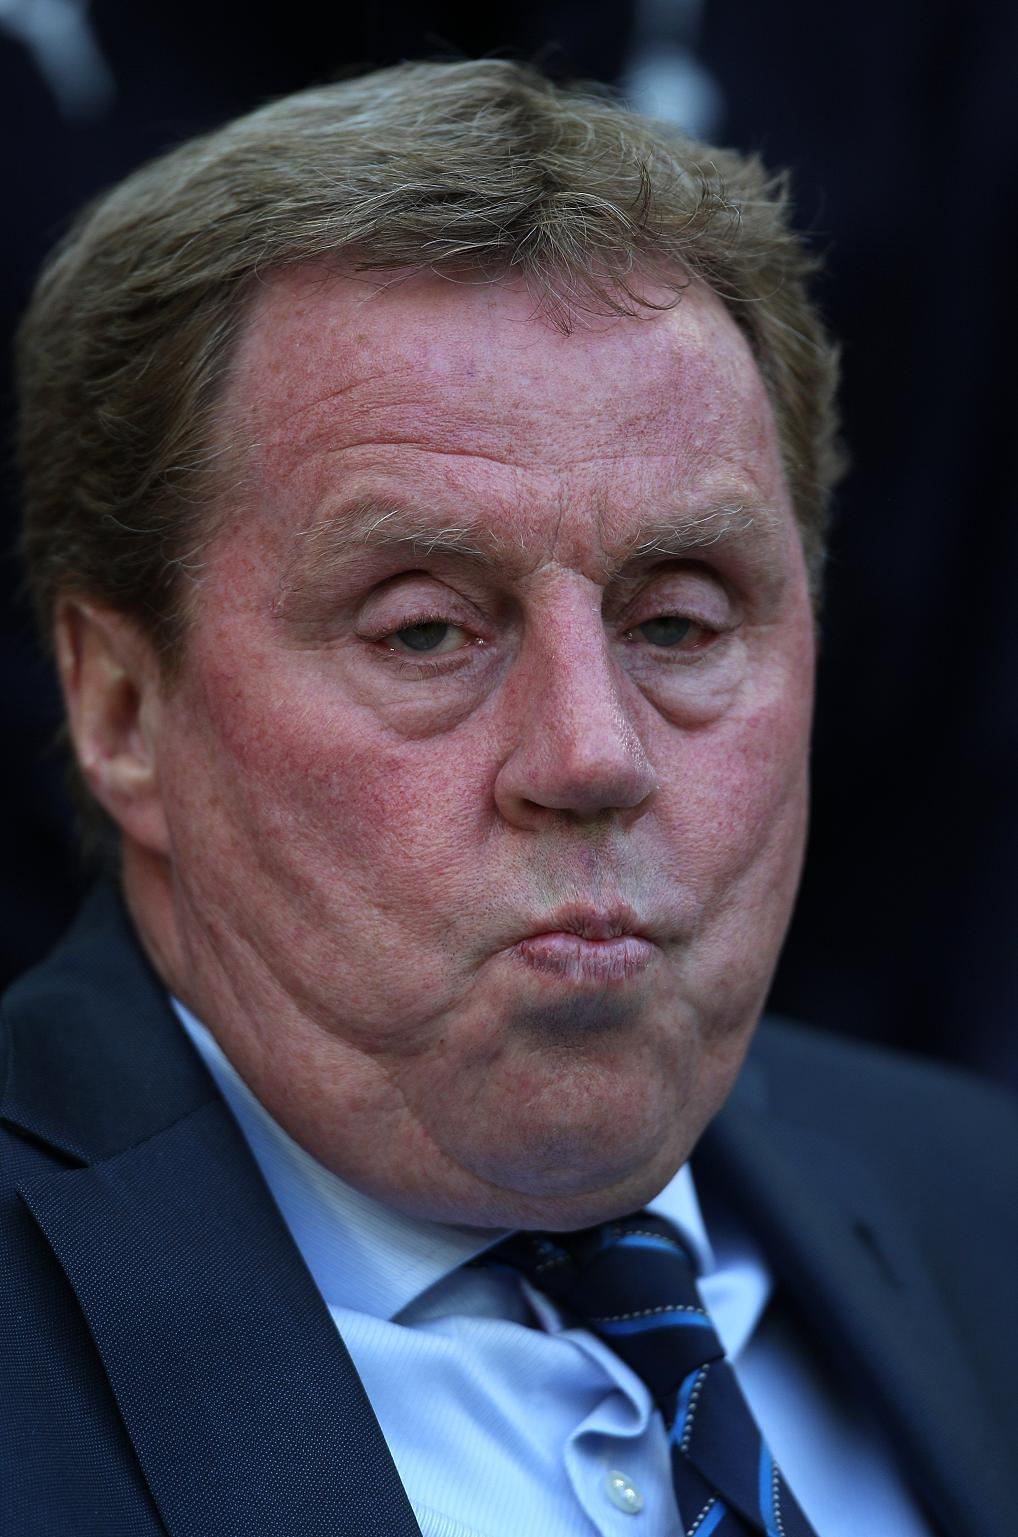 VOLUNTARY WORK: Harry Redknapp